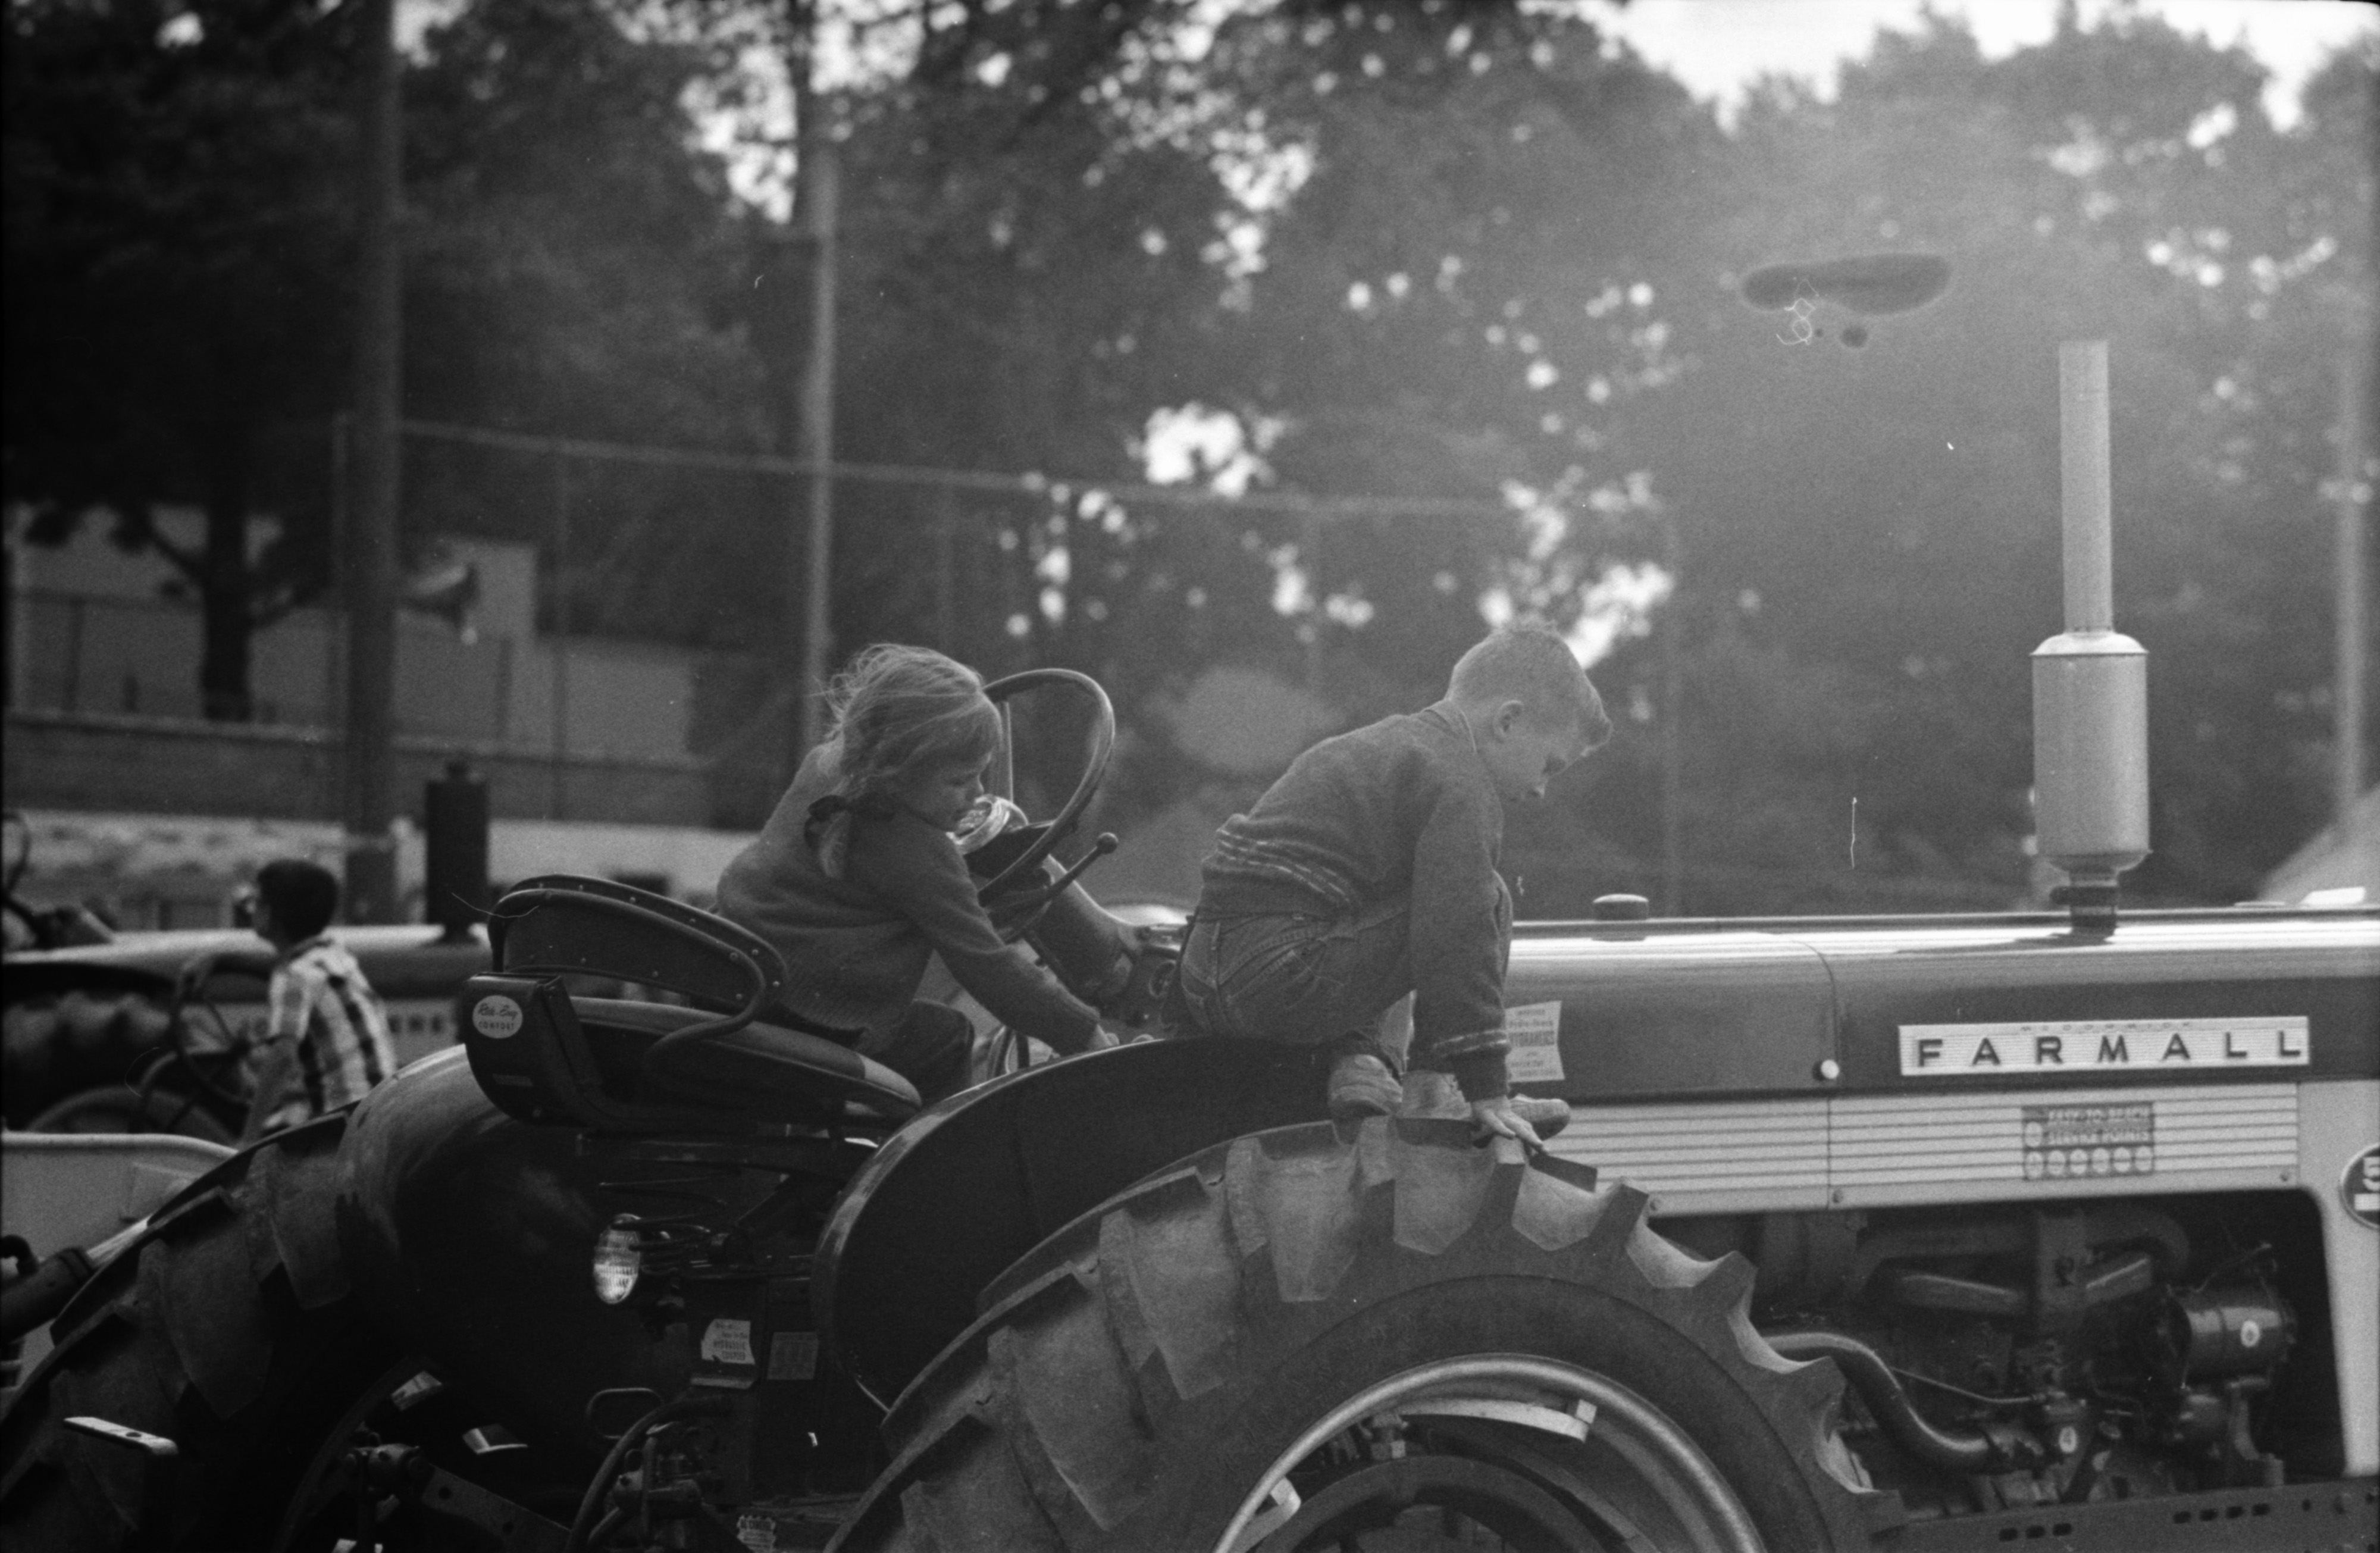 Boy and Girl on a Farmall Tractor at the Saline Fair image